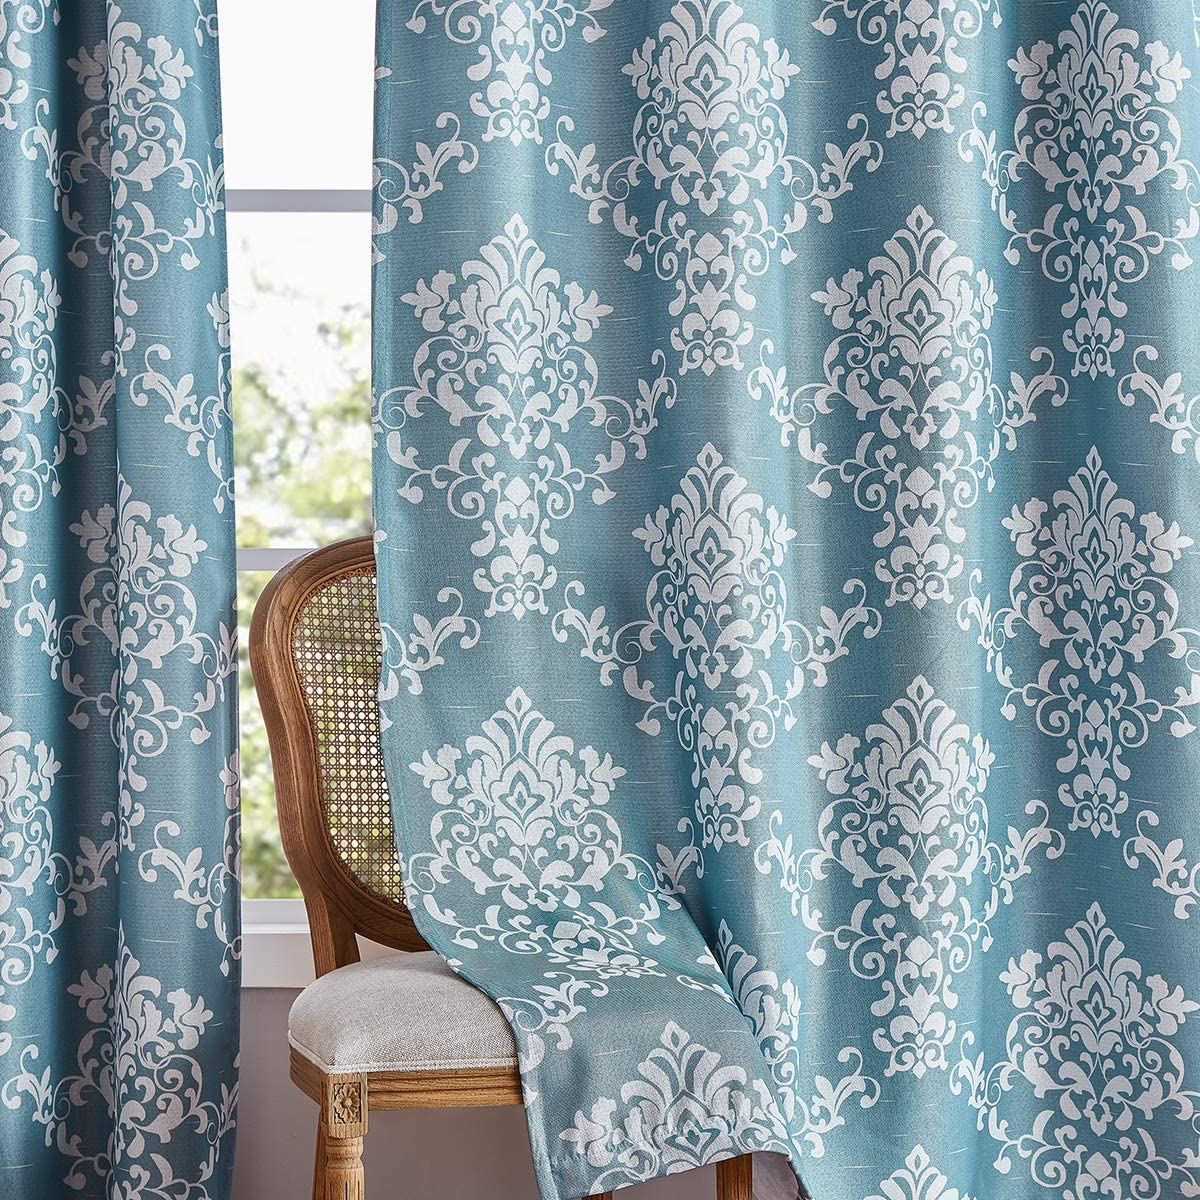 Damask Print Curtains for Living Room Darkening Thermal Weave Drapes Vintage Linen Medallion Curtain Panels Window Treatment Sets for Bedroom Patio Door 1 Pair 95 Blue